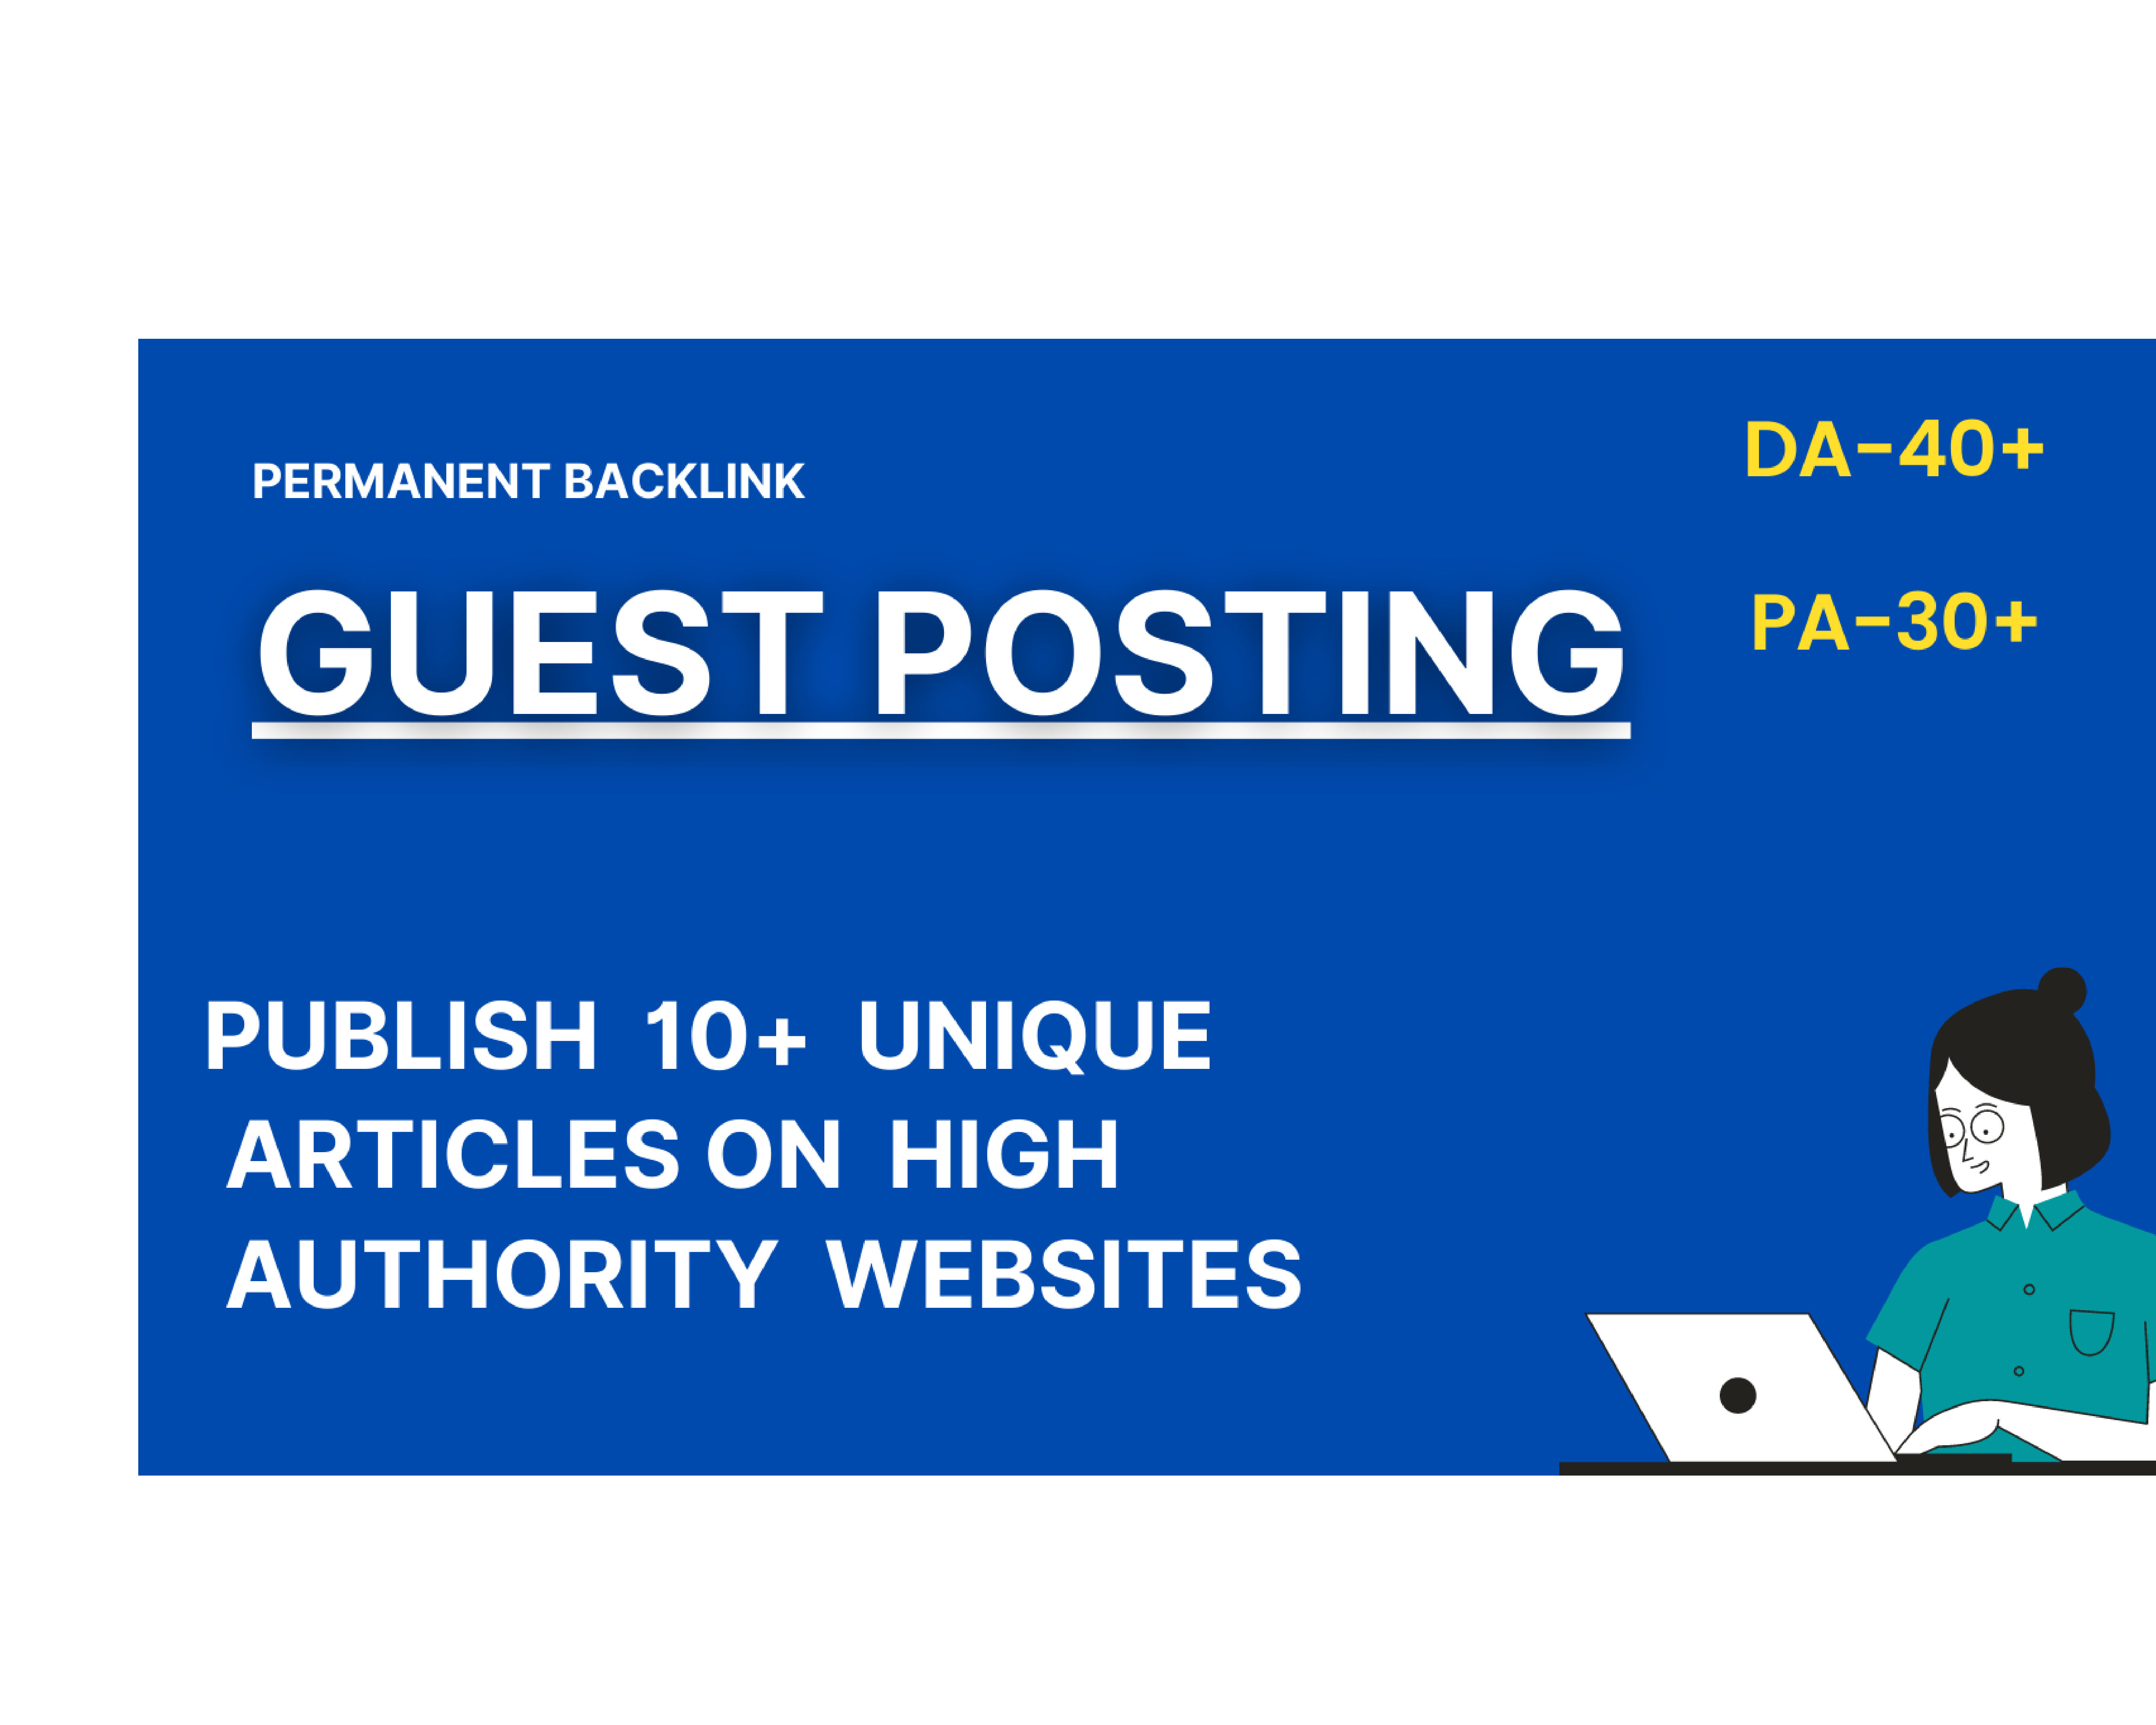 I will do guest post of 10 unique articles on high authority websites